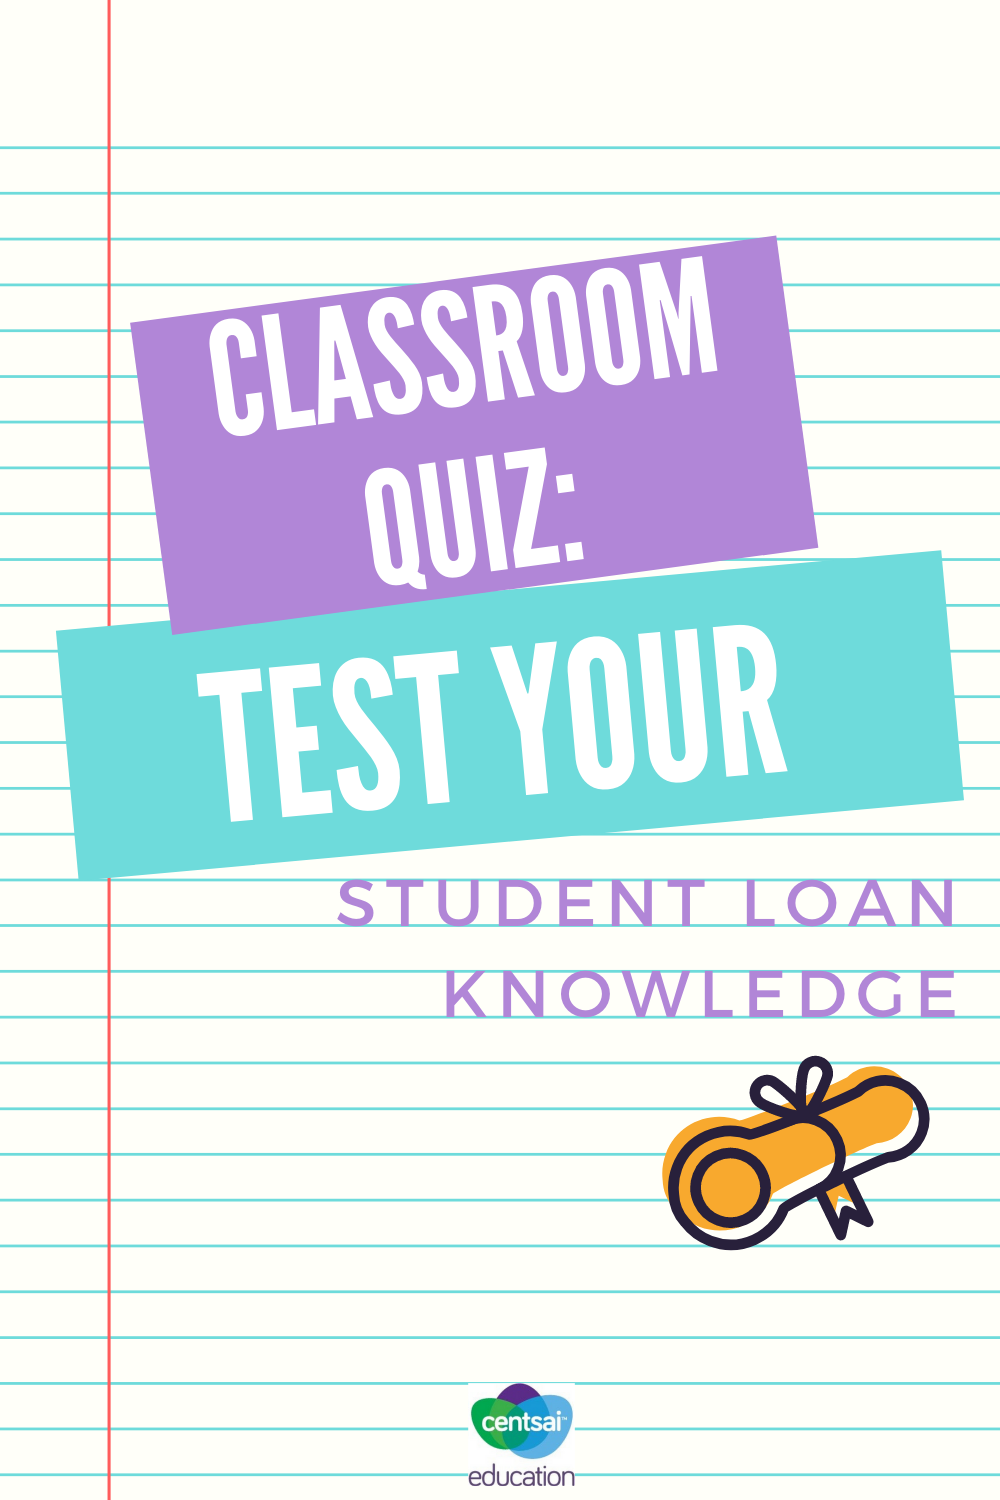 Student loans can be a critical part of someone's education plan. Let's find out how much your students know. #studentloans #college #payingoff #CentSaiEducation